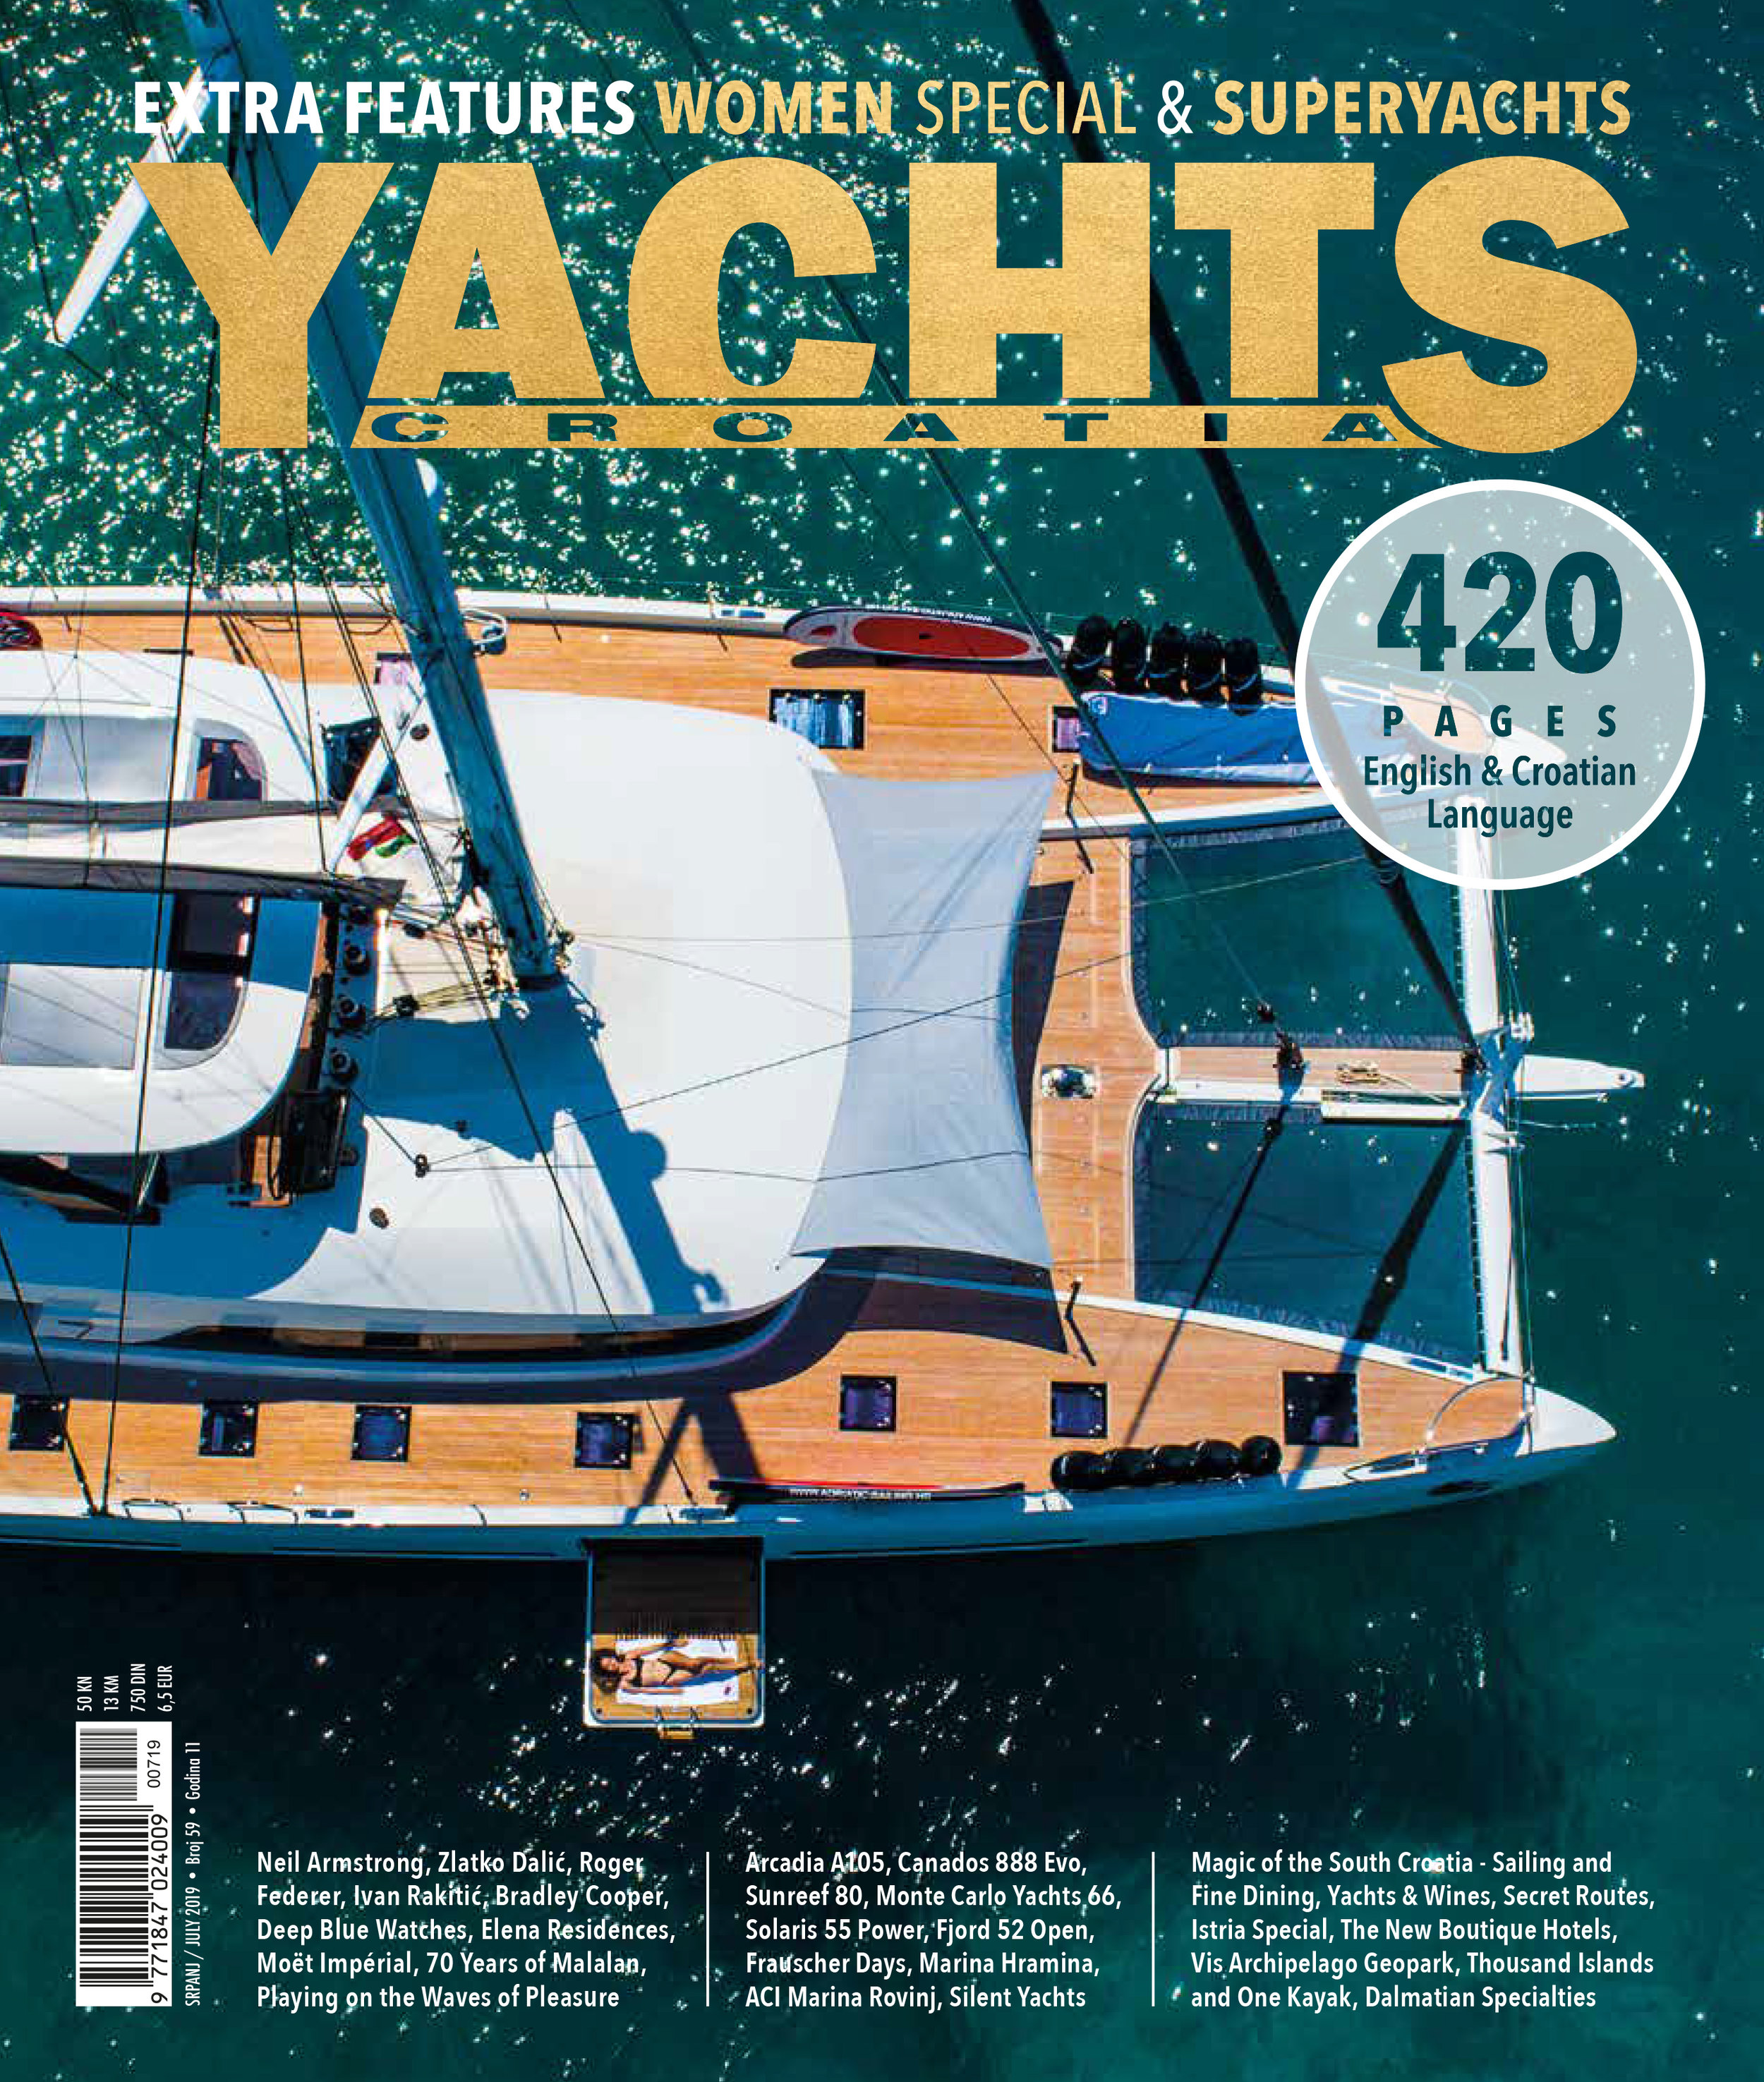 Photo shoot for the cover of Yacht Magazine